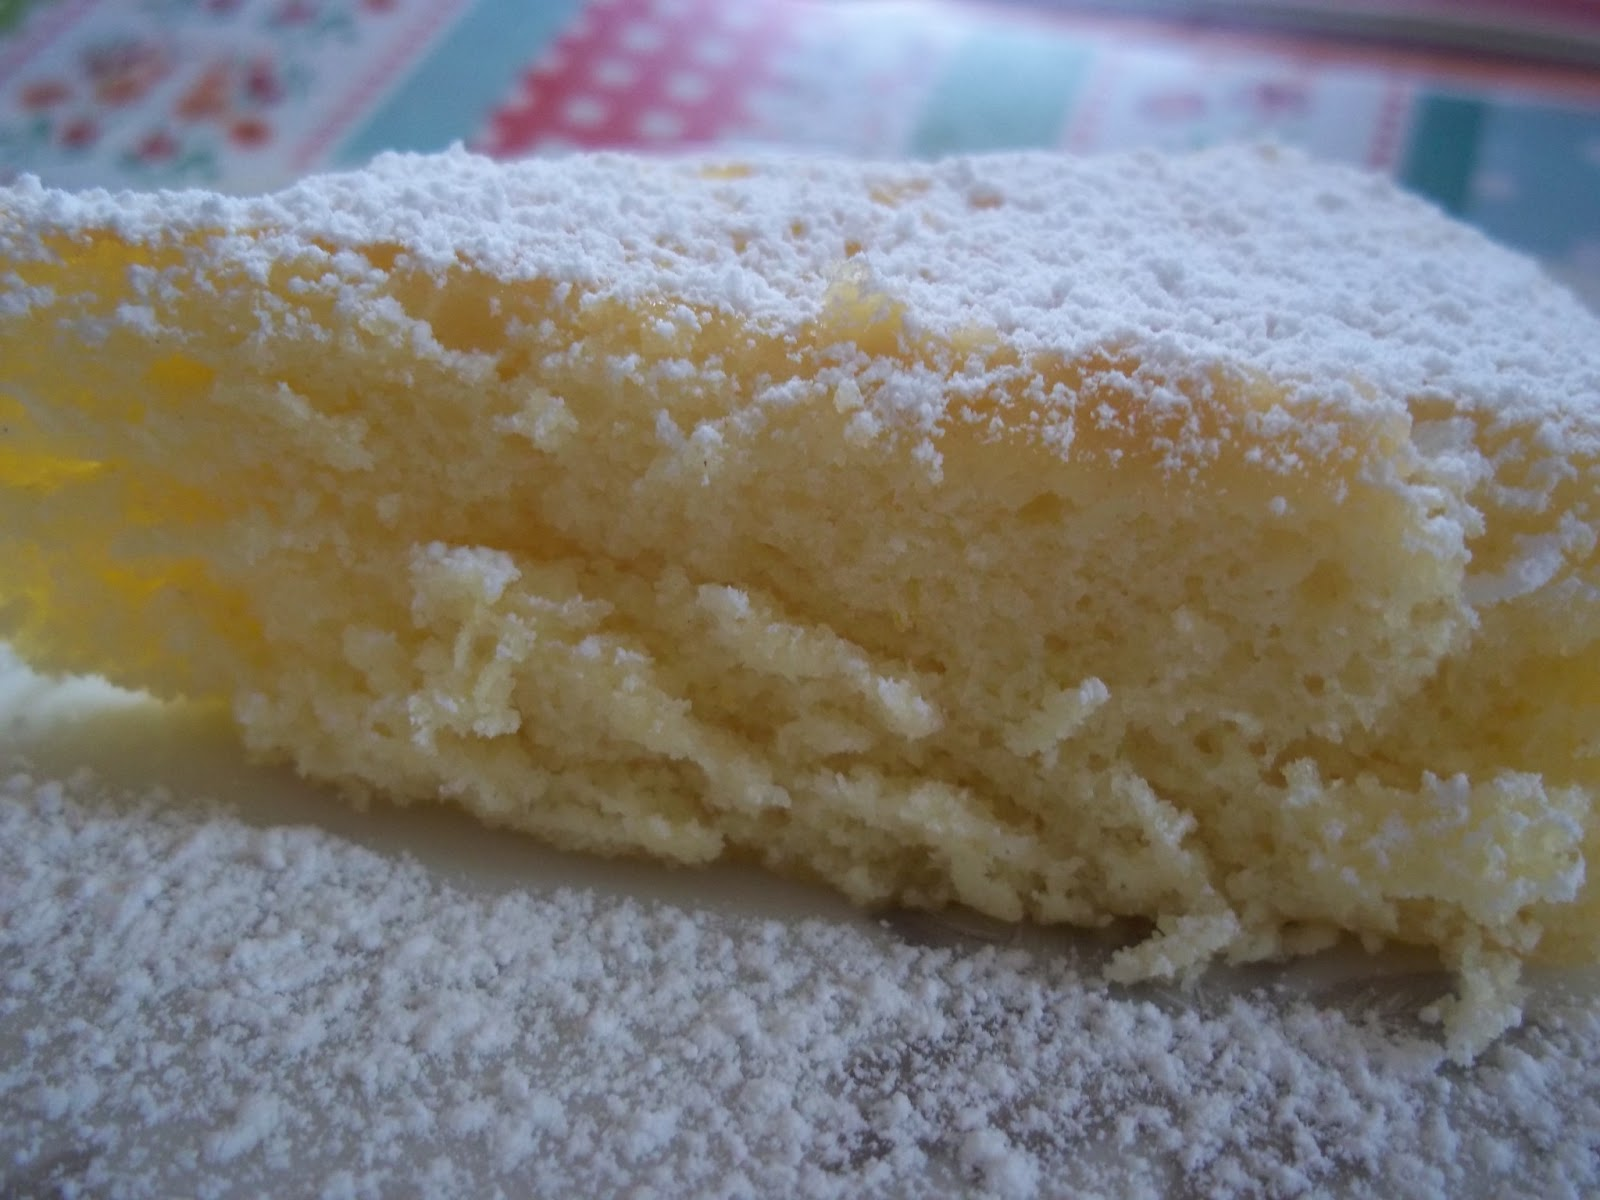 Can You Use Runny Icing On A Sponge Cake